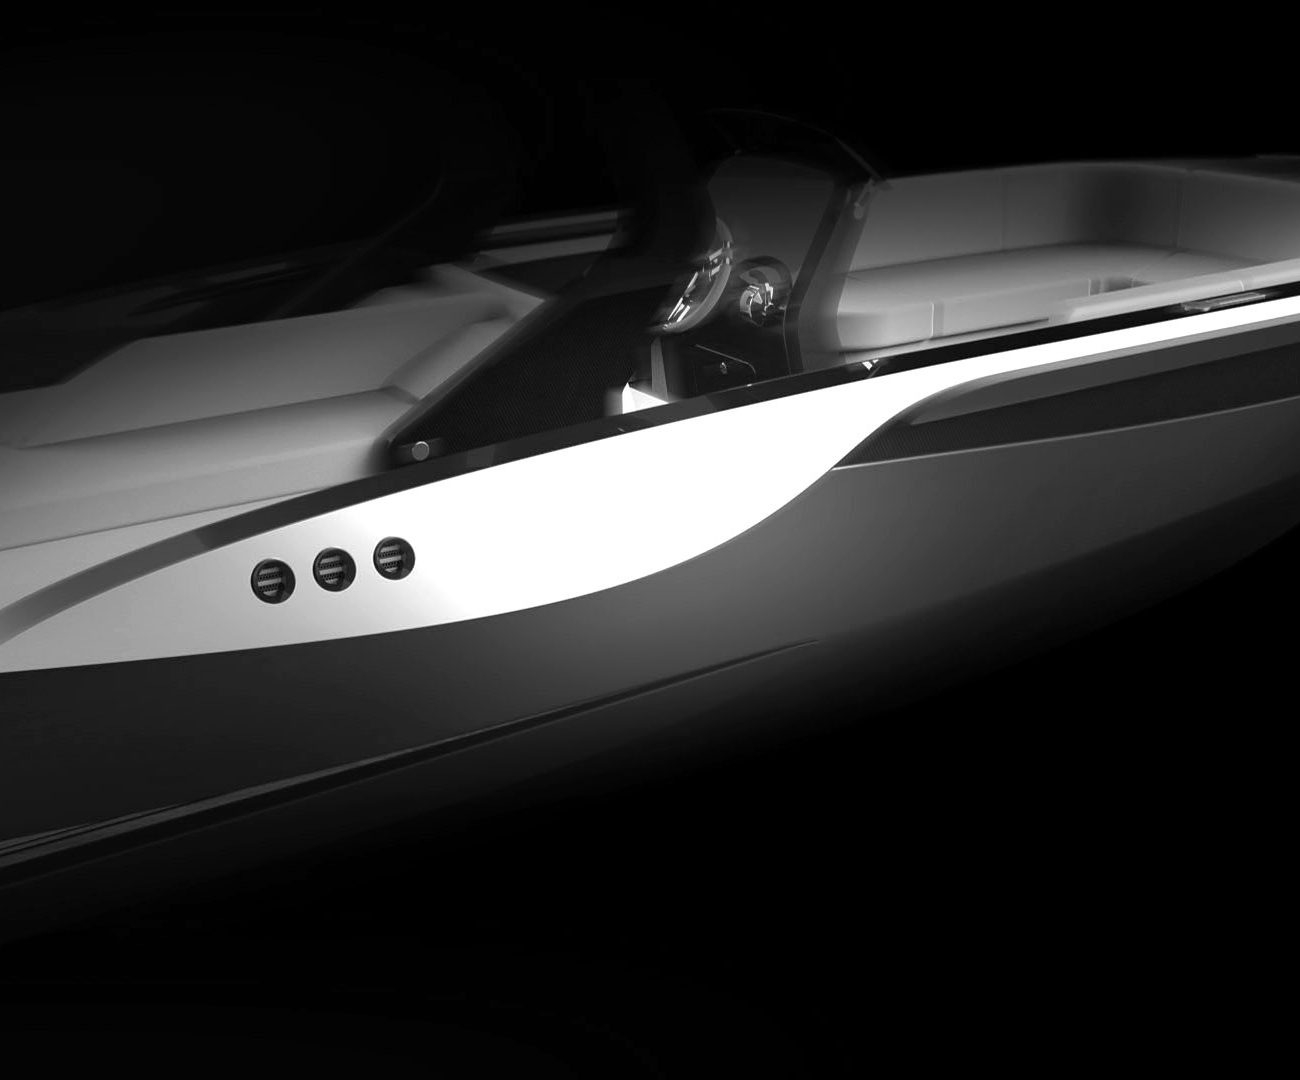 Open tender boat Silverline designed by Hamid Bekradi